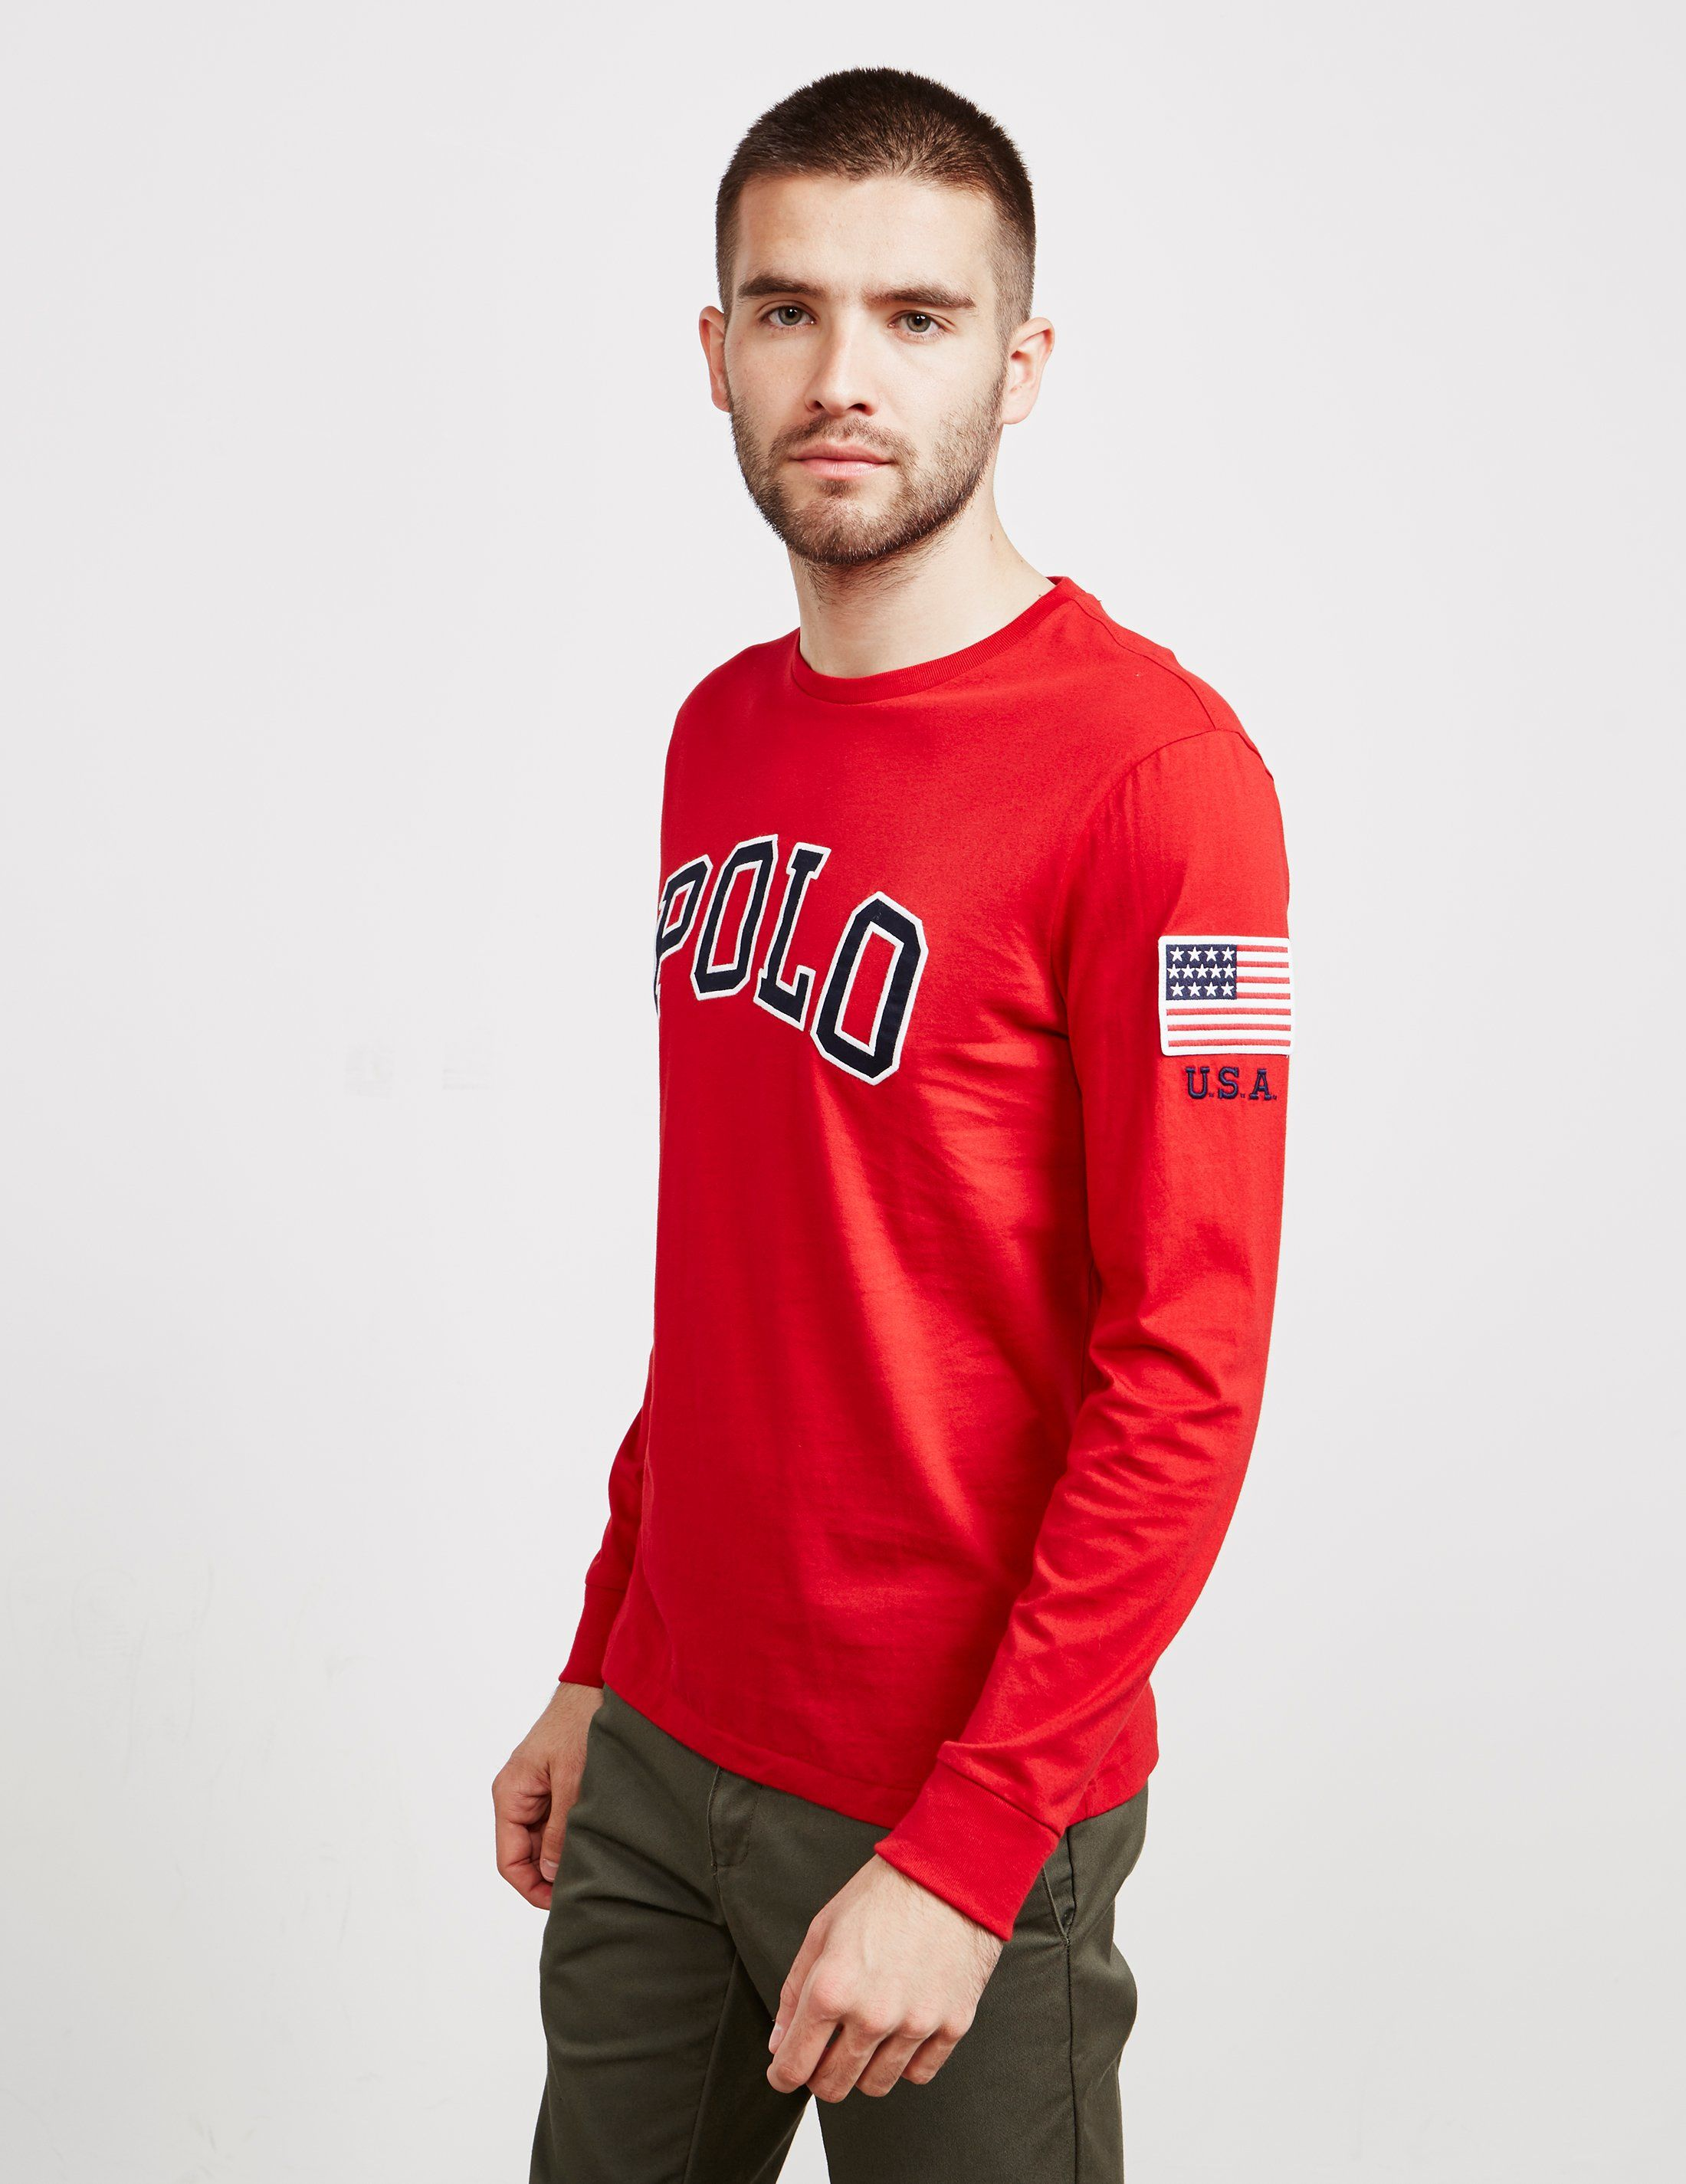 Polo Ralph Lauren Polo Long Sleeve T-Shirt